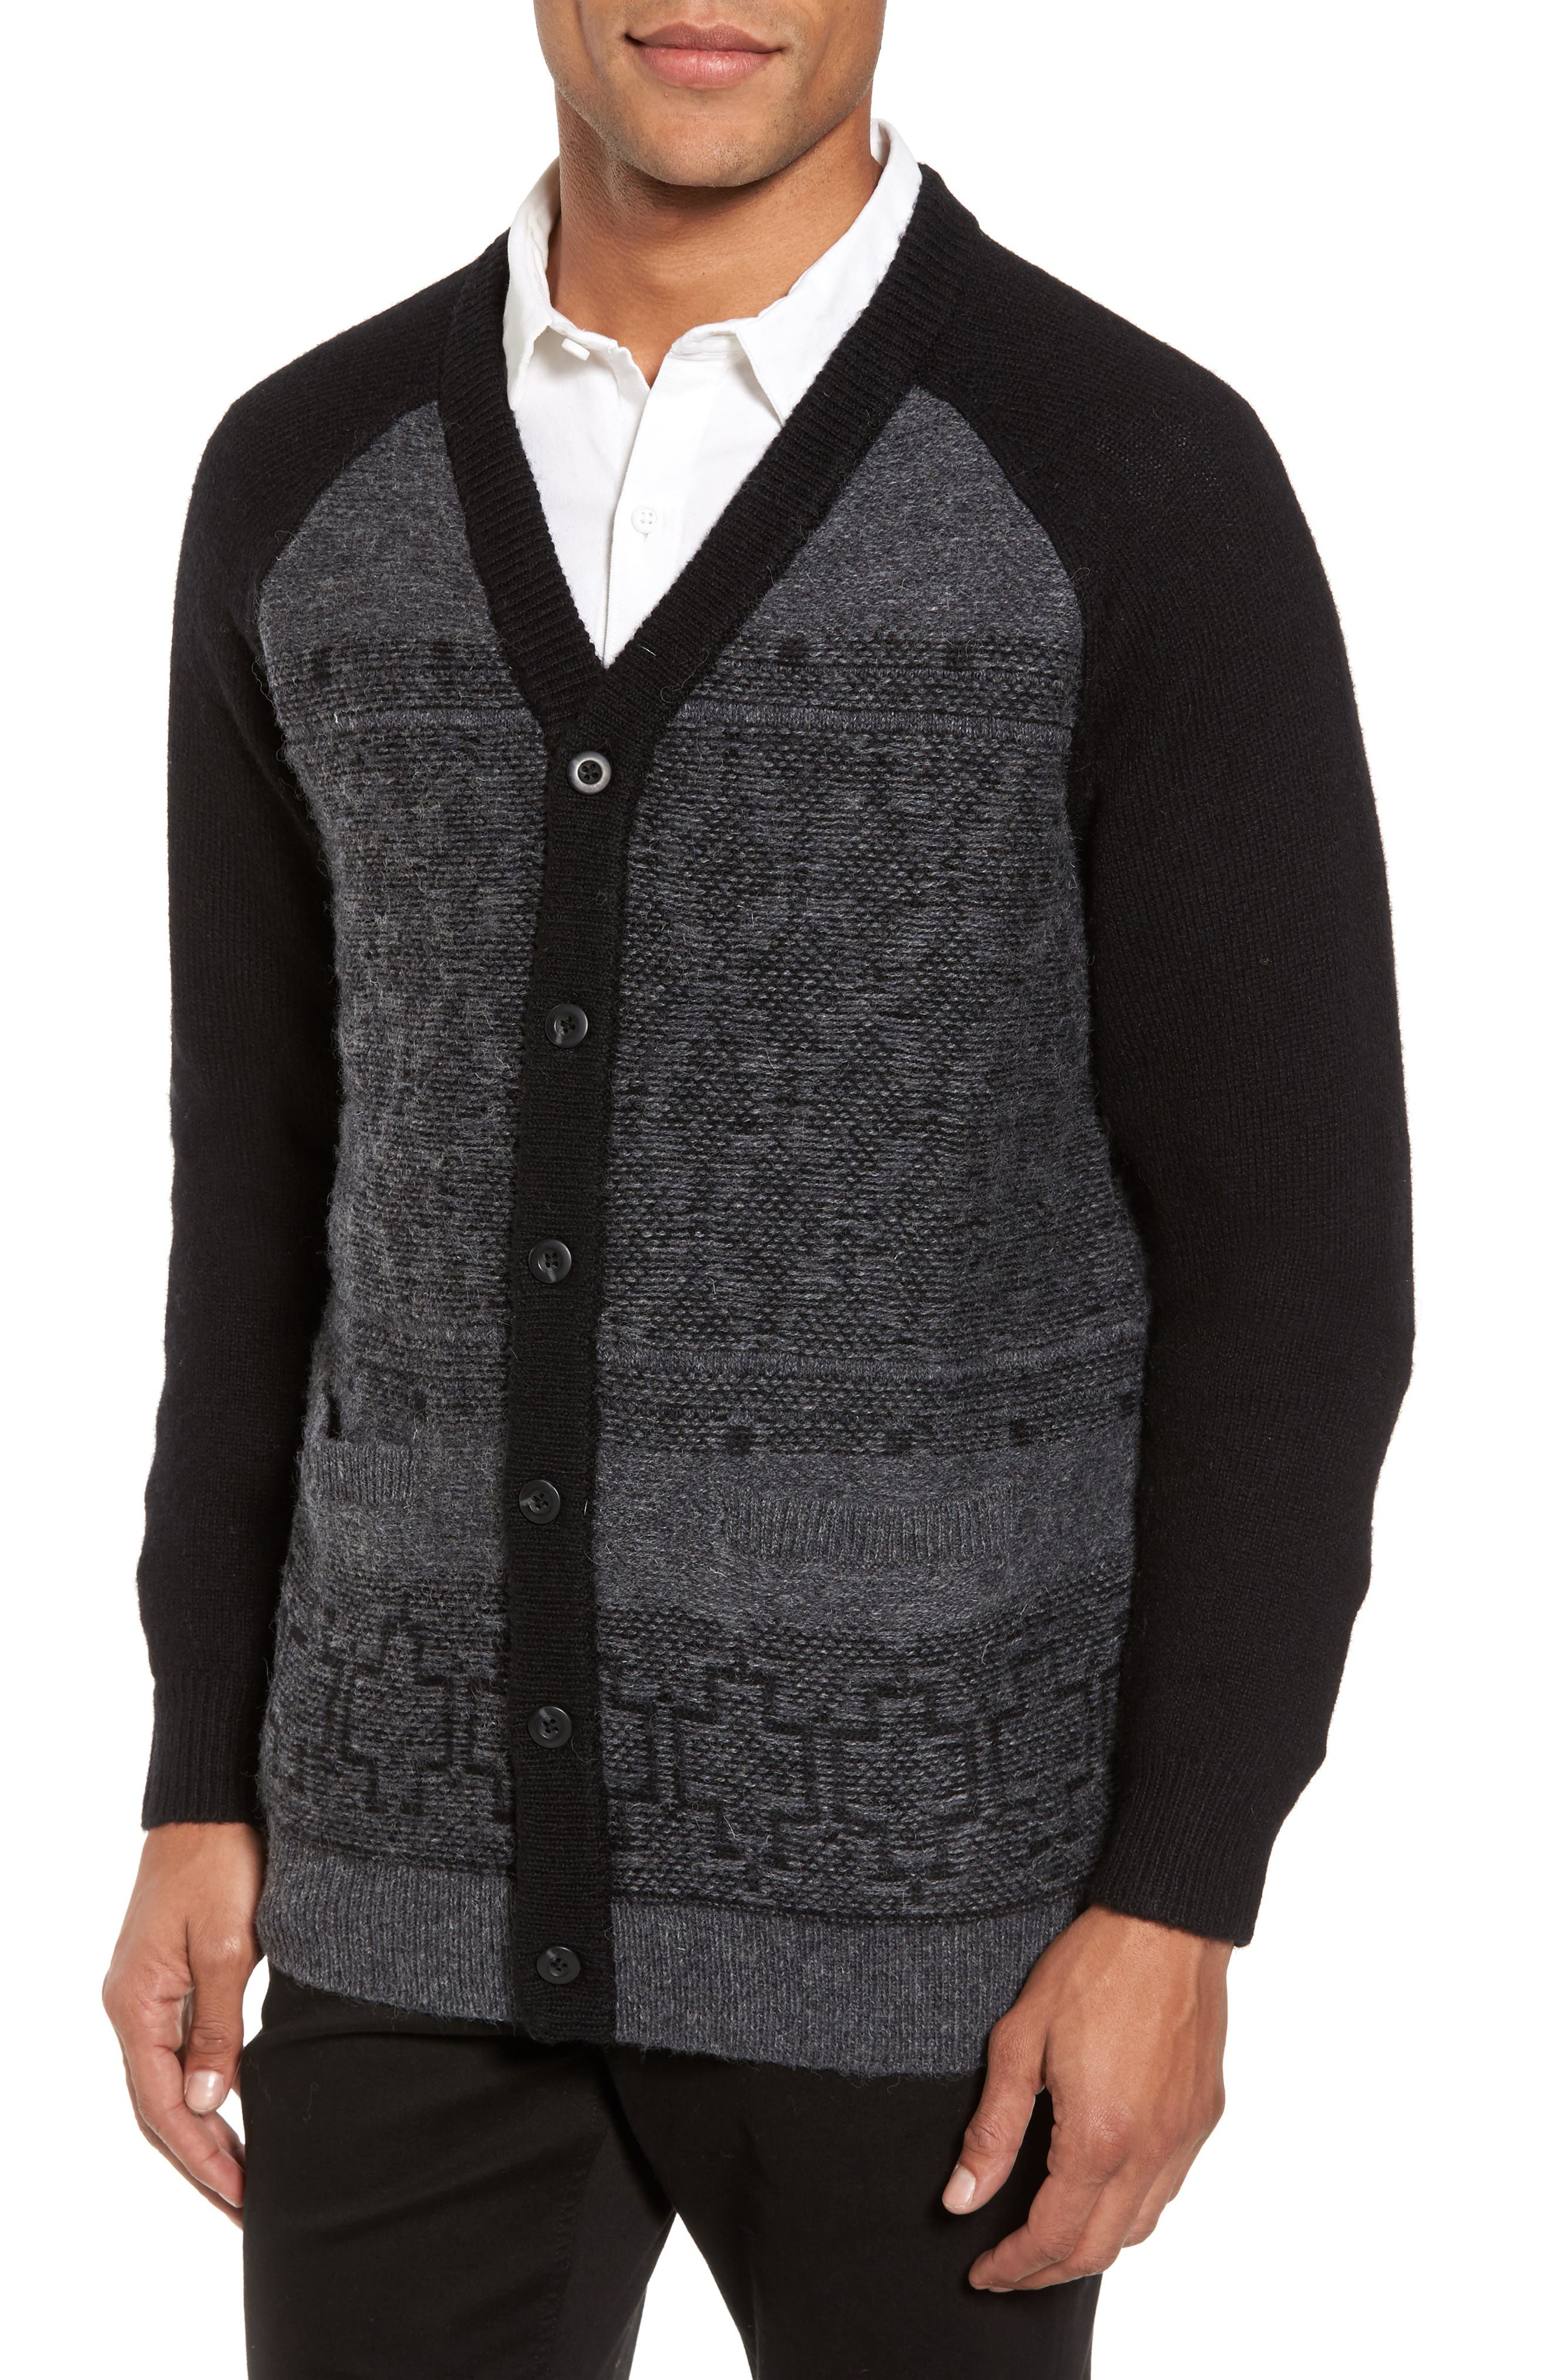 Waverly Cardigan,                             Main thumbnail 1, color,                             Grey/ Black